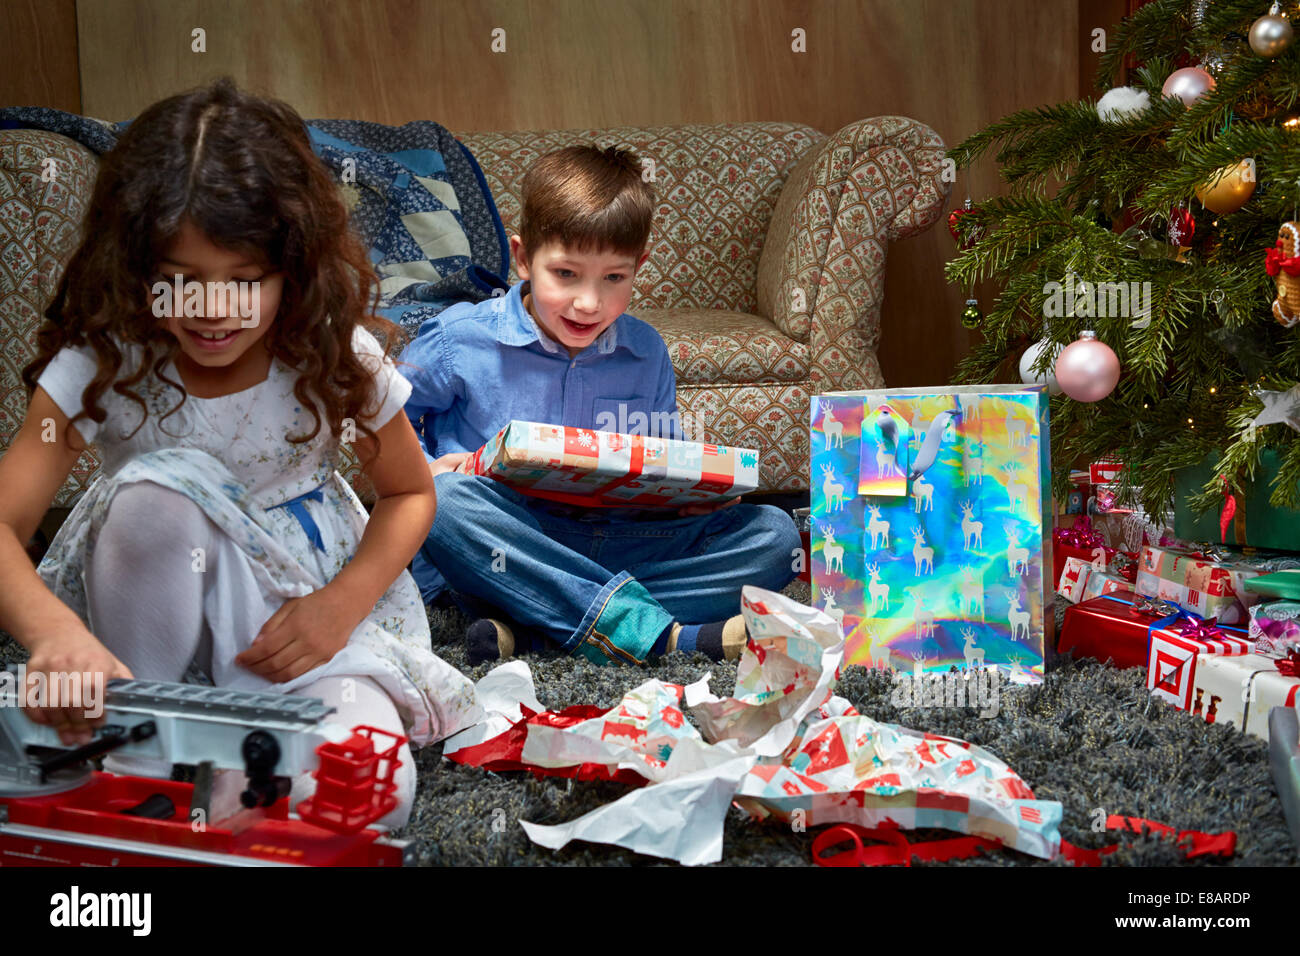 Sister and brother in sitting room unwrapping and playing with christmas gifts - Stock Image